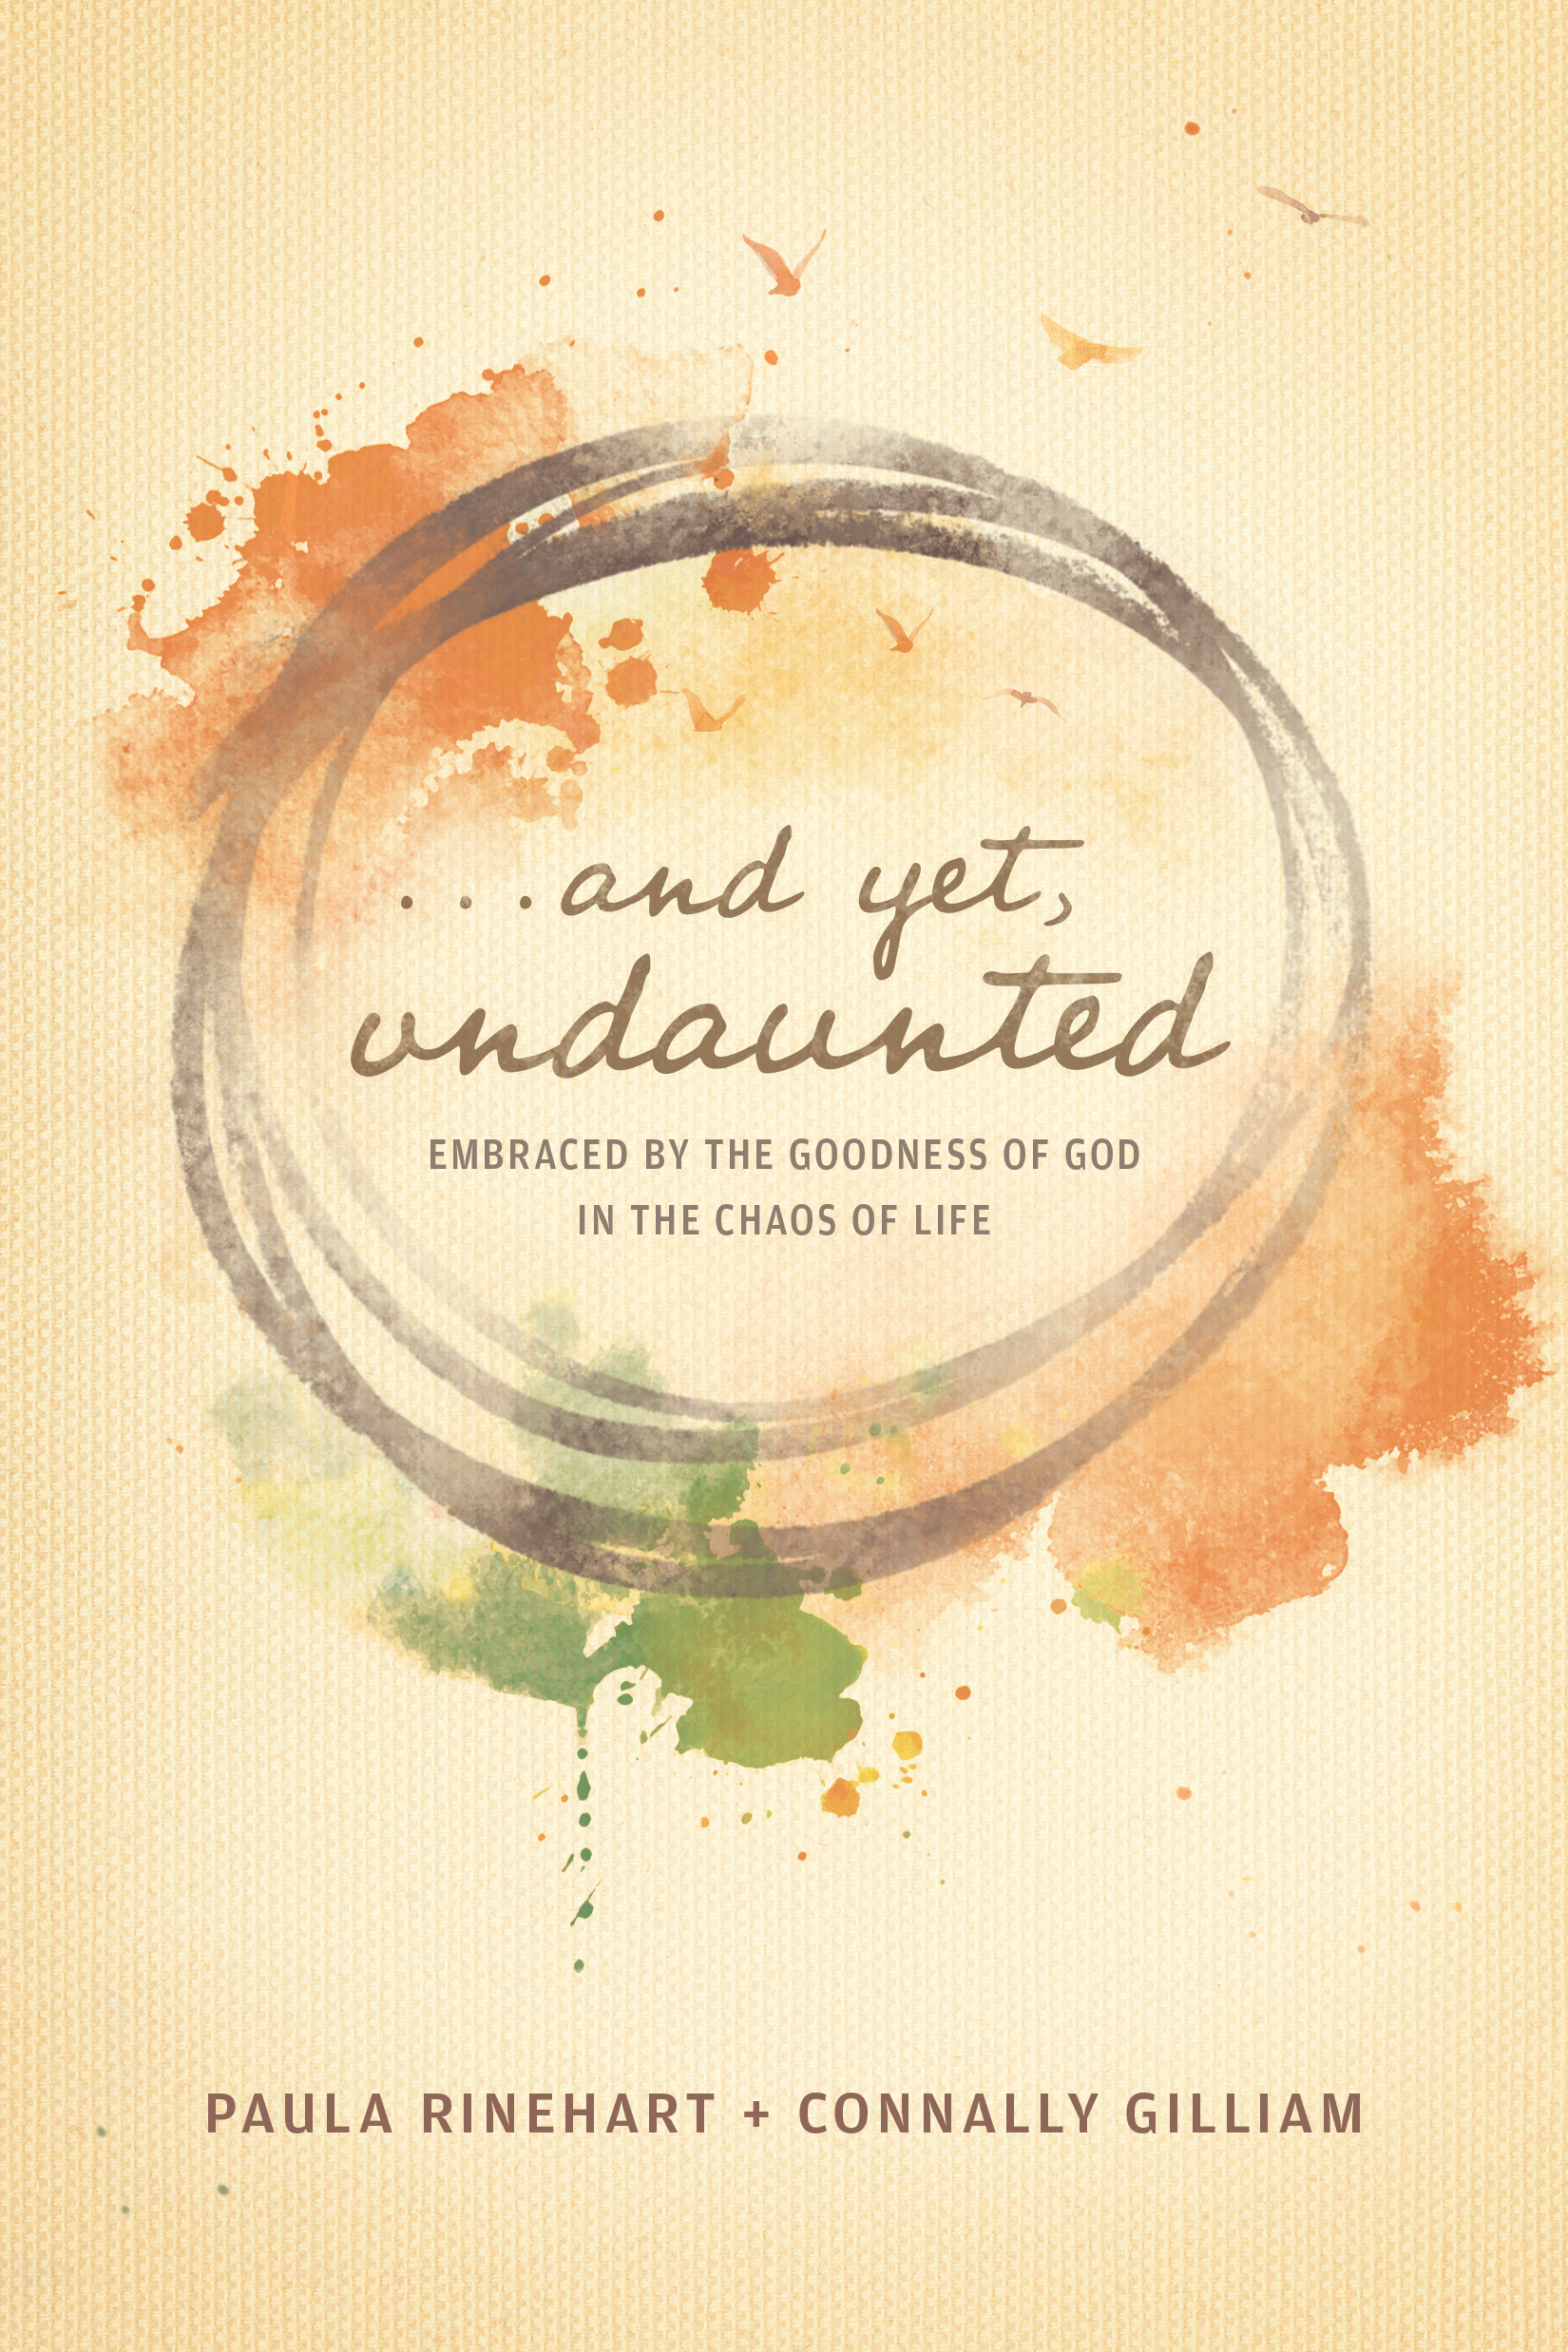 Cover of And Yet, Undaunted, by Paula Rinehart and Connally Gilliam